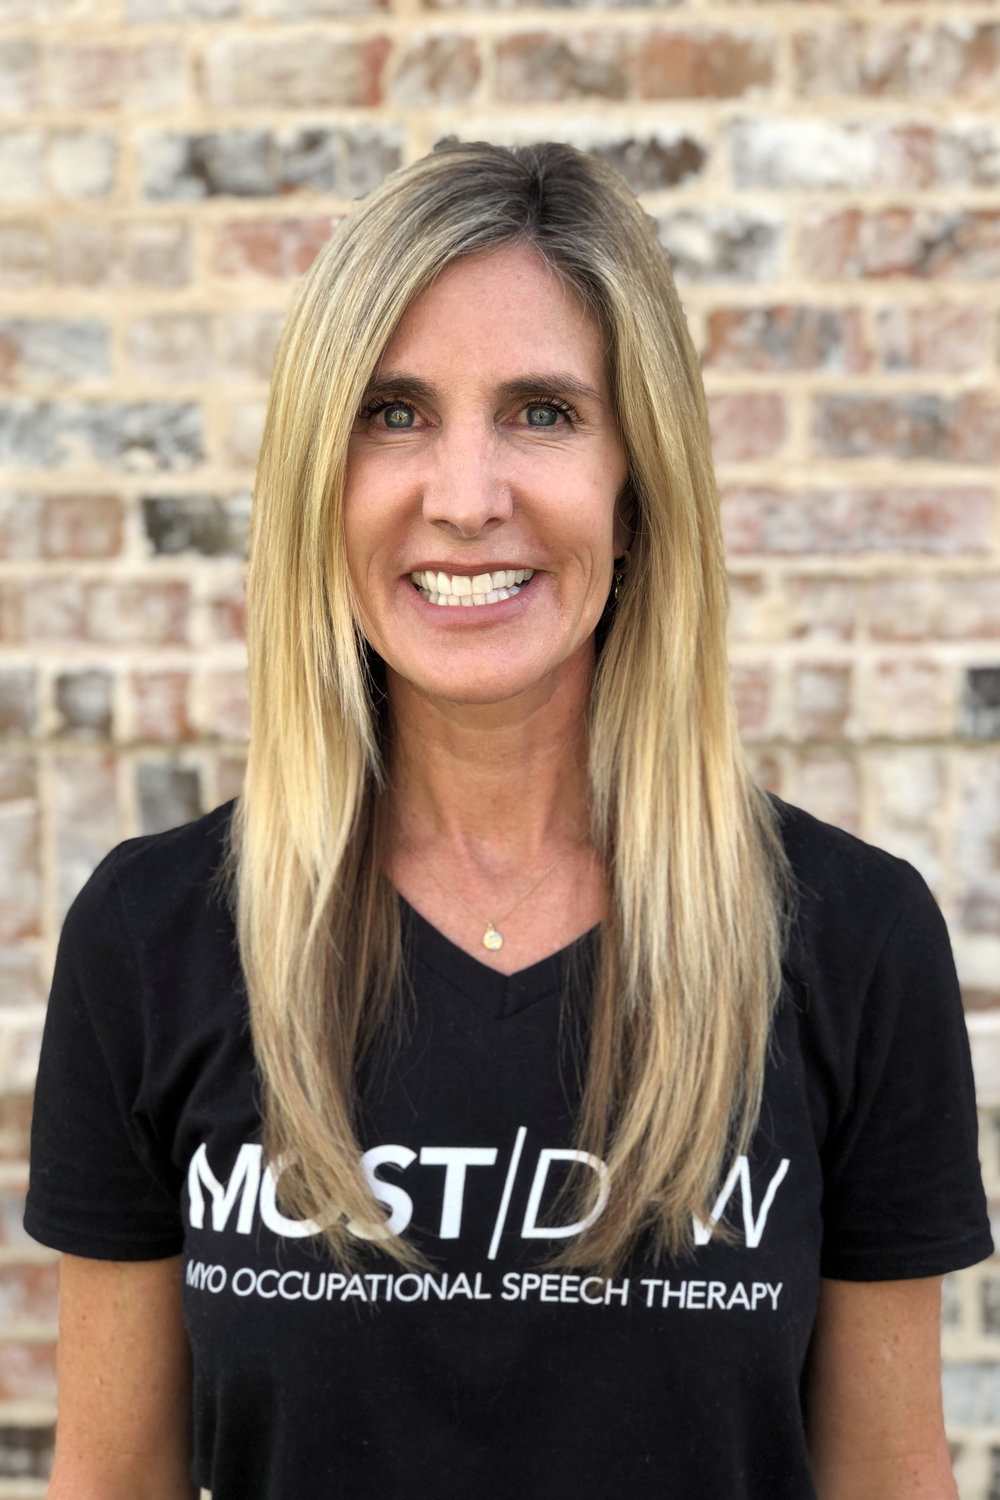 Shannon Smith, MS/CCC-SLP    shannons@mostdfw.com